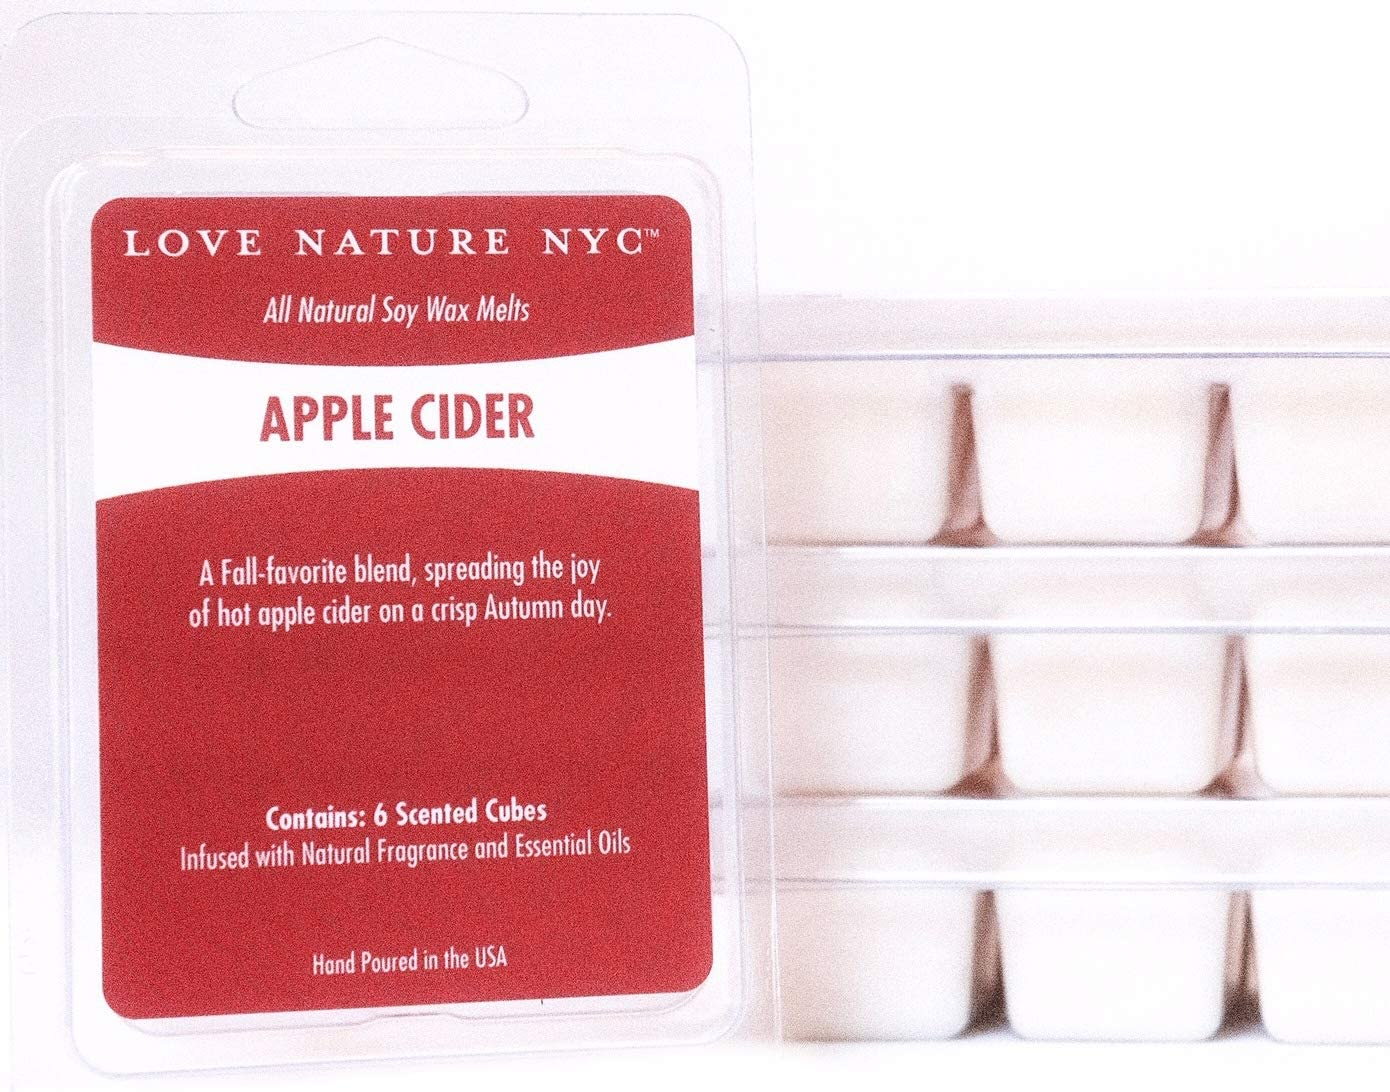 LOVE NATURE NYC Natural Soy Wax Melts, (3 Pack), Apple Cider Scented, Non-Toxic, 18 Cubes, for use in Tea Light or Flameless Plug in Electric Fragrance Warmers for Tarts, Oils and Candle Wax